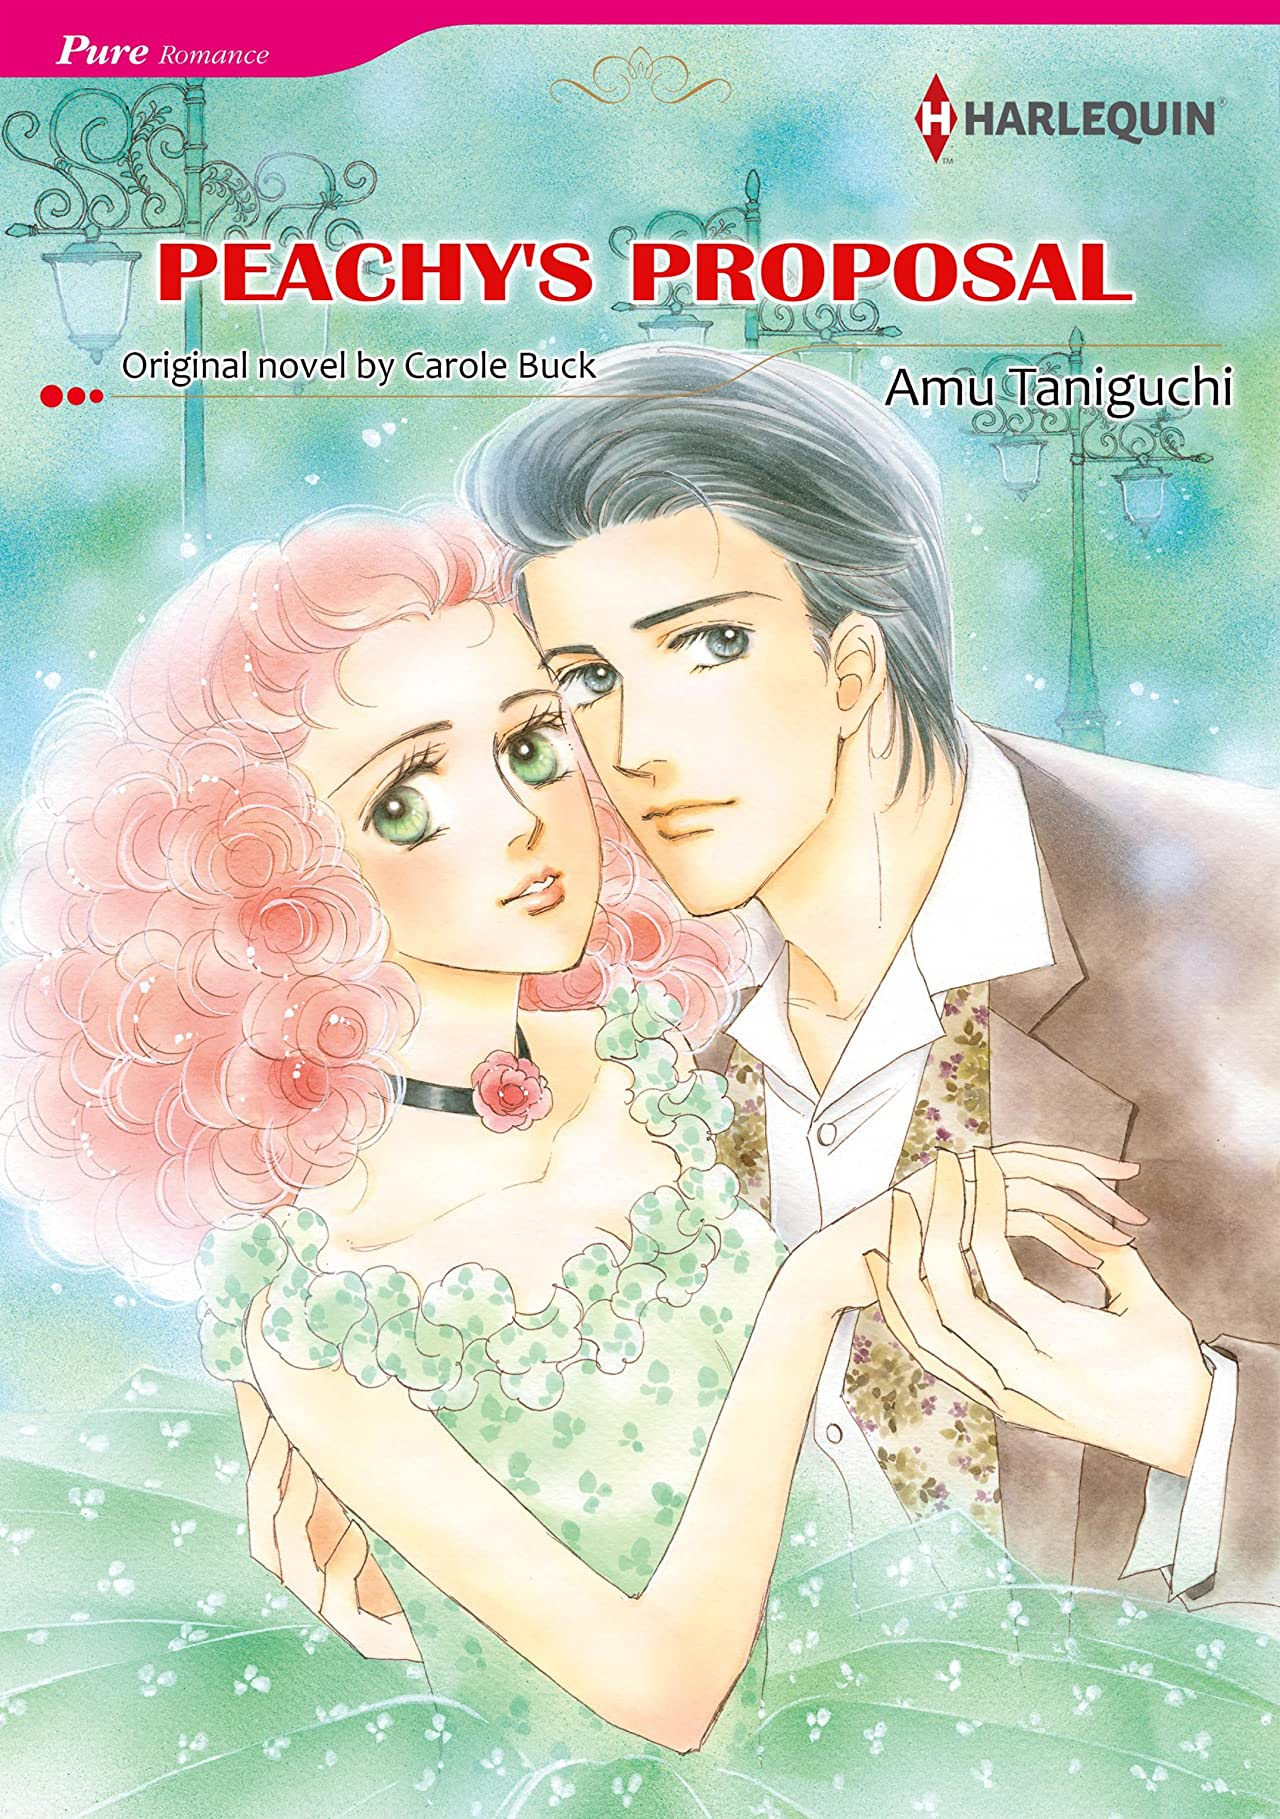 Peachy's Proposal